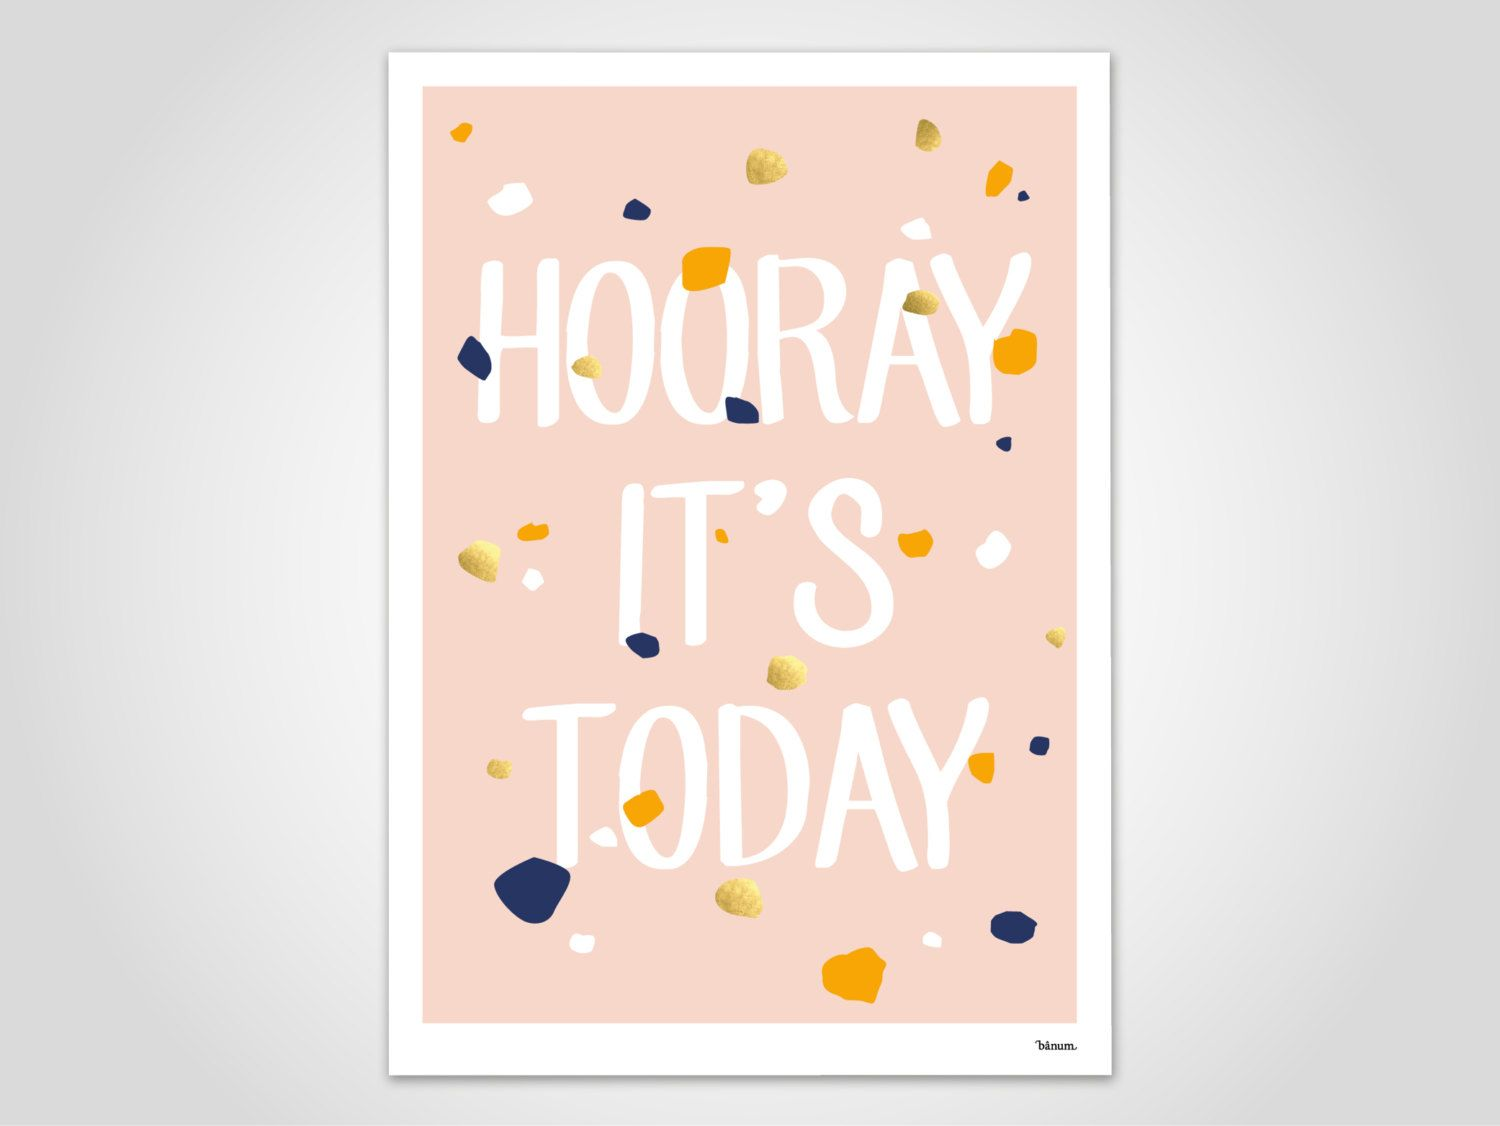 Feier Party Hooray Today Modern Kunstdruck Poster Bild Konfetti Feier